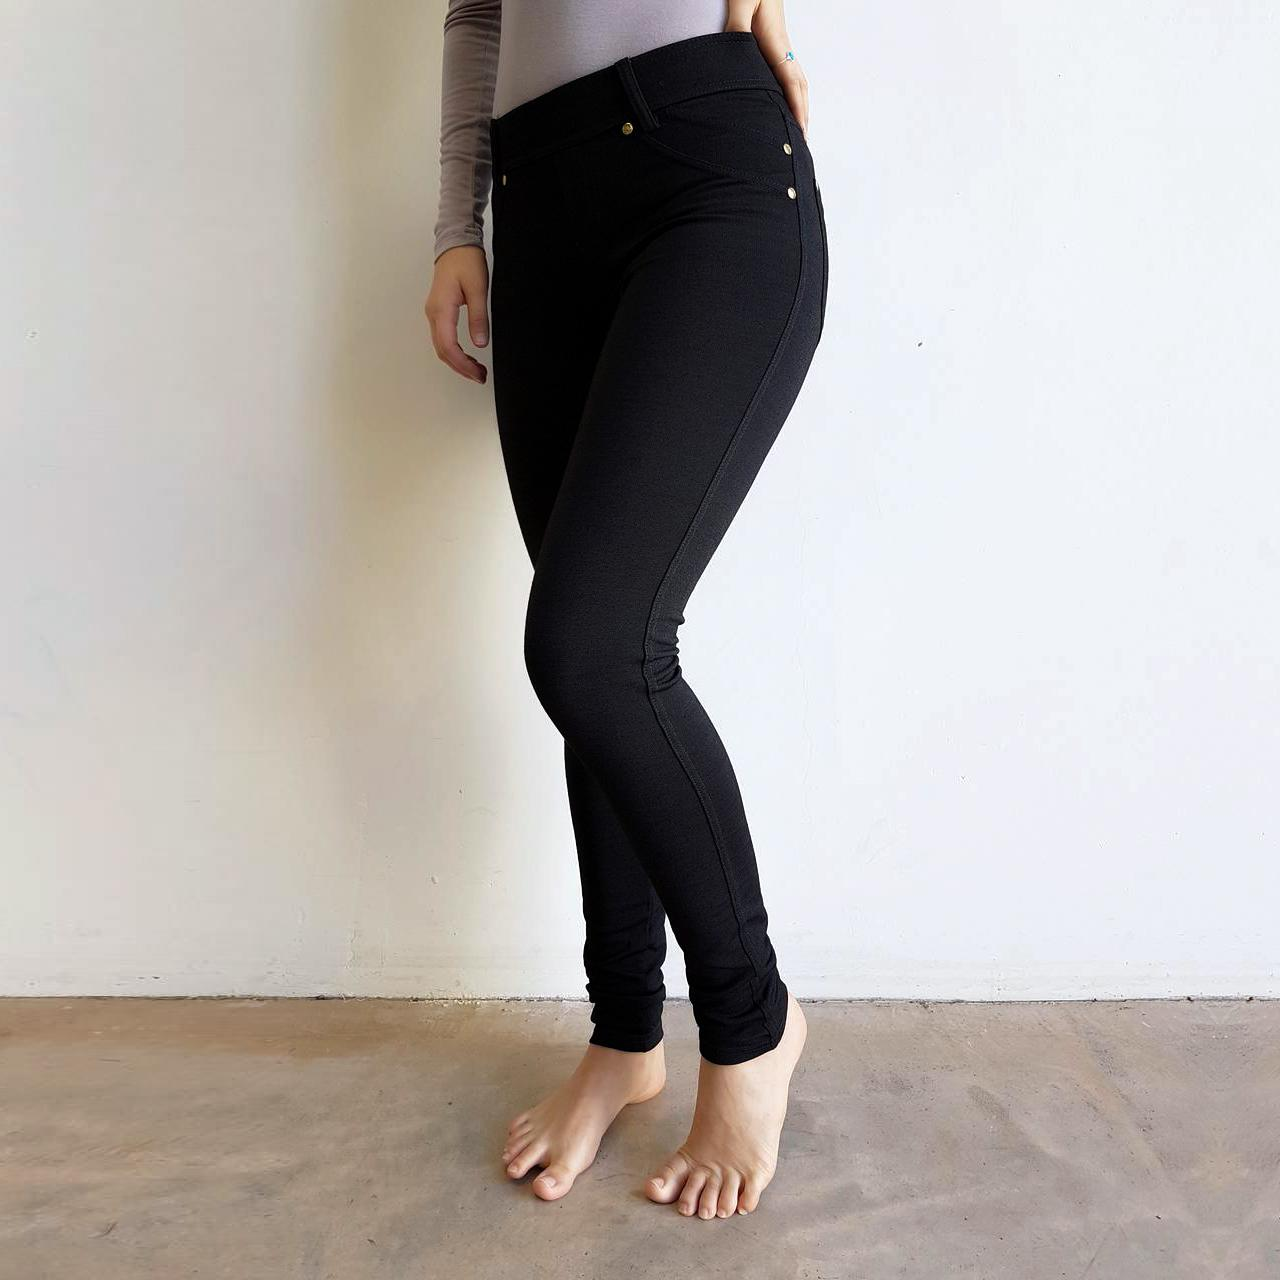 516e28e3516ac ... Comfortable Stretch Jean Leggings. Quality denim-look with brushed  cotton finish inside for winter ...